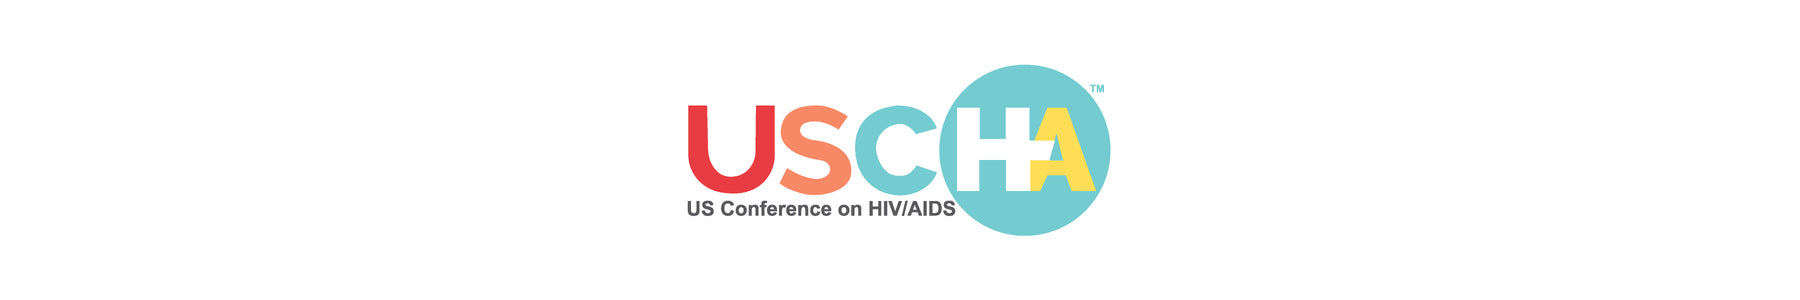 US Conference on HIV/AIDS Goes Virtual